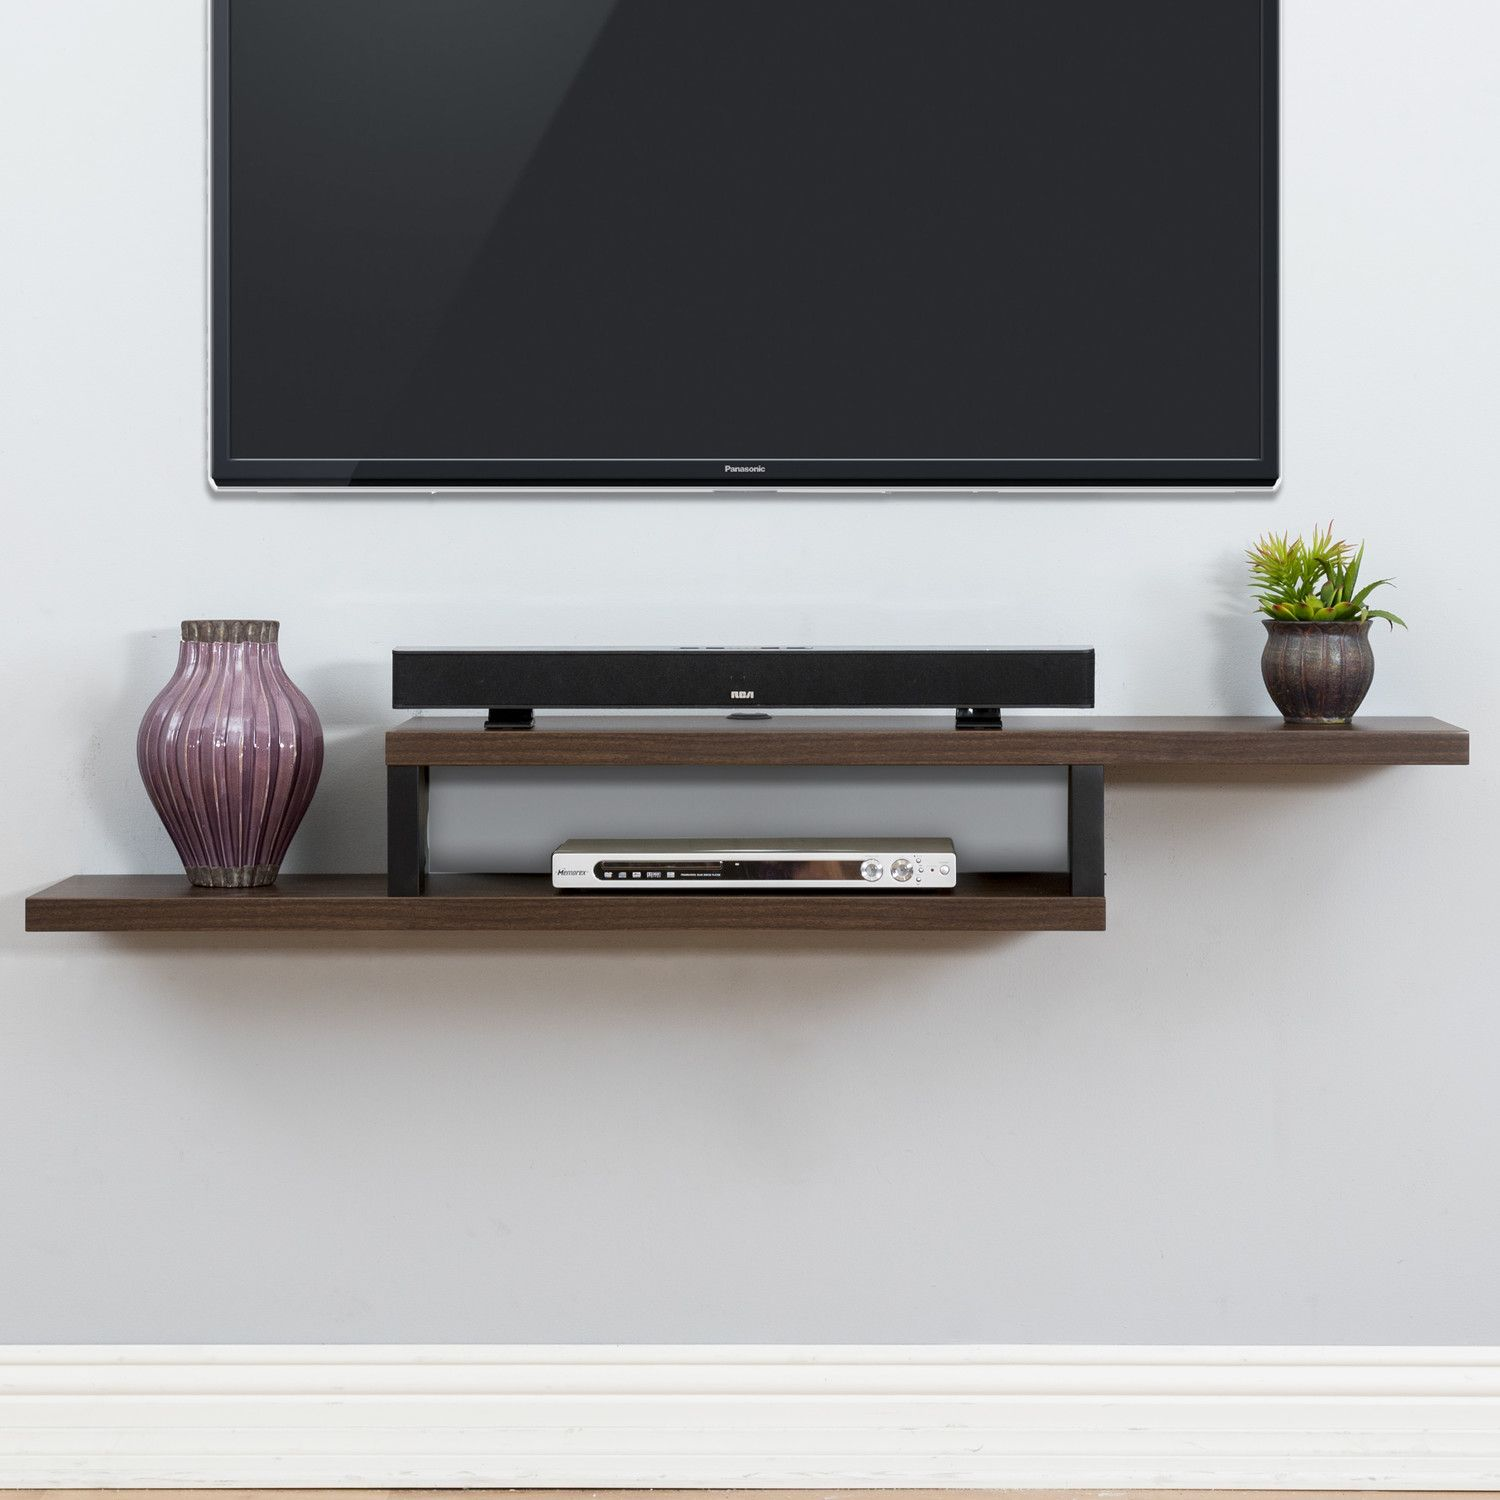 Tv wall mount style ideas to combine with your attractive - Hanging tv on wall ideas ...